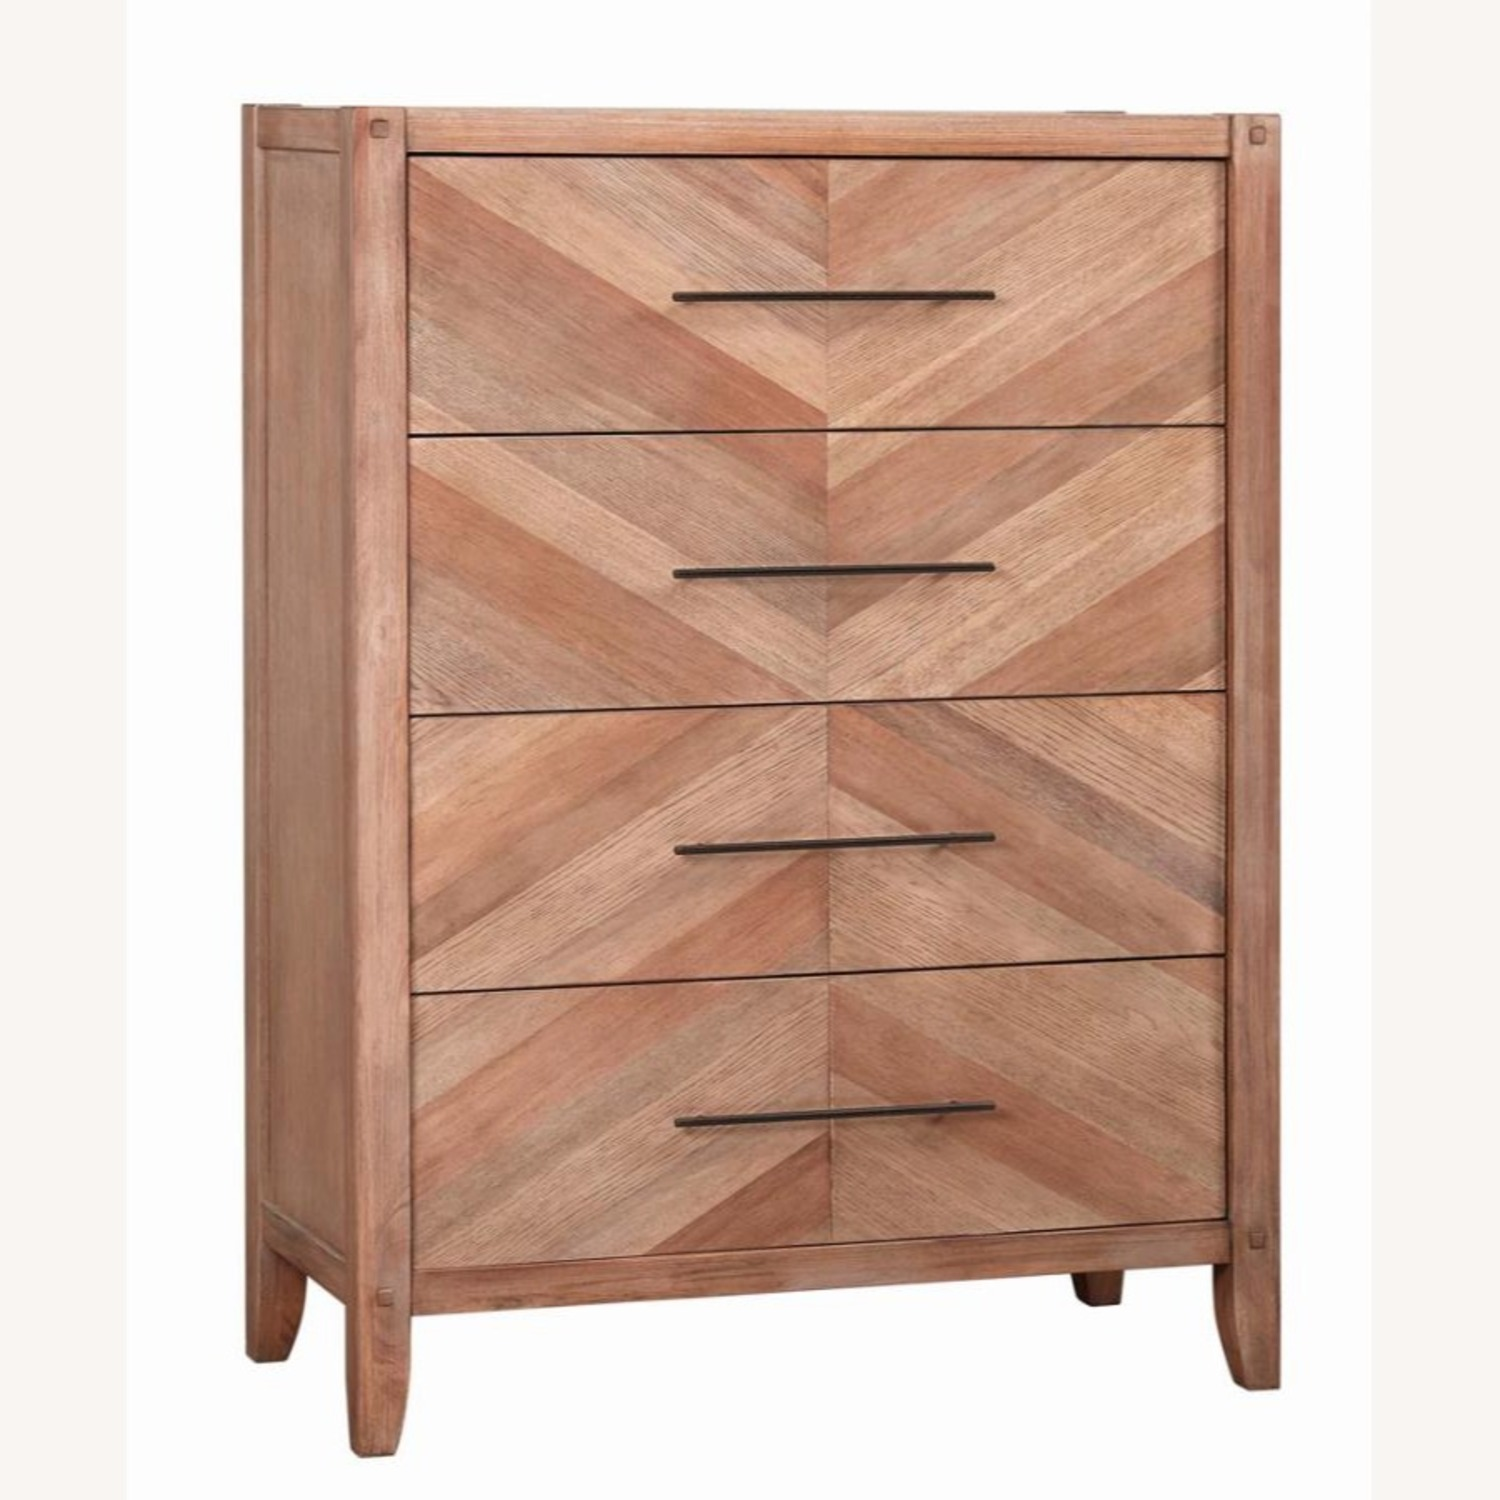 Modern Chest In Natural White Washed Finish - image-0